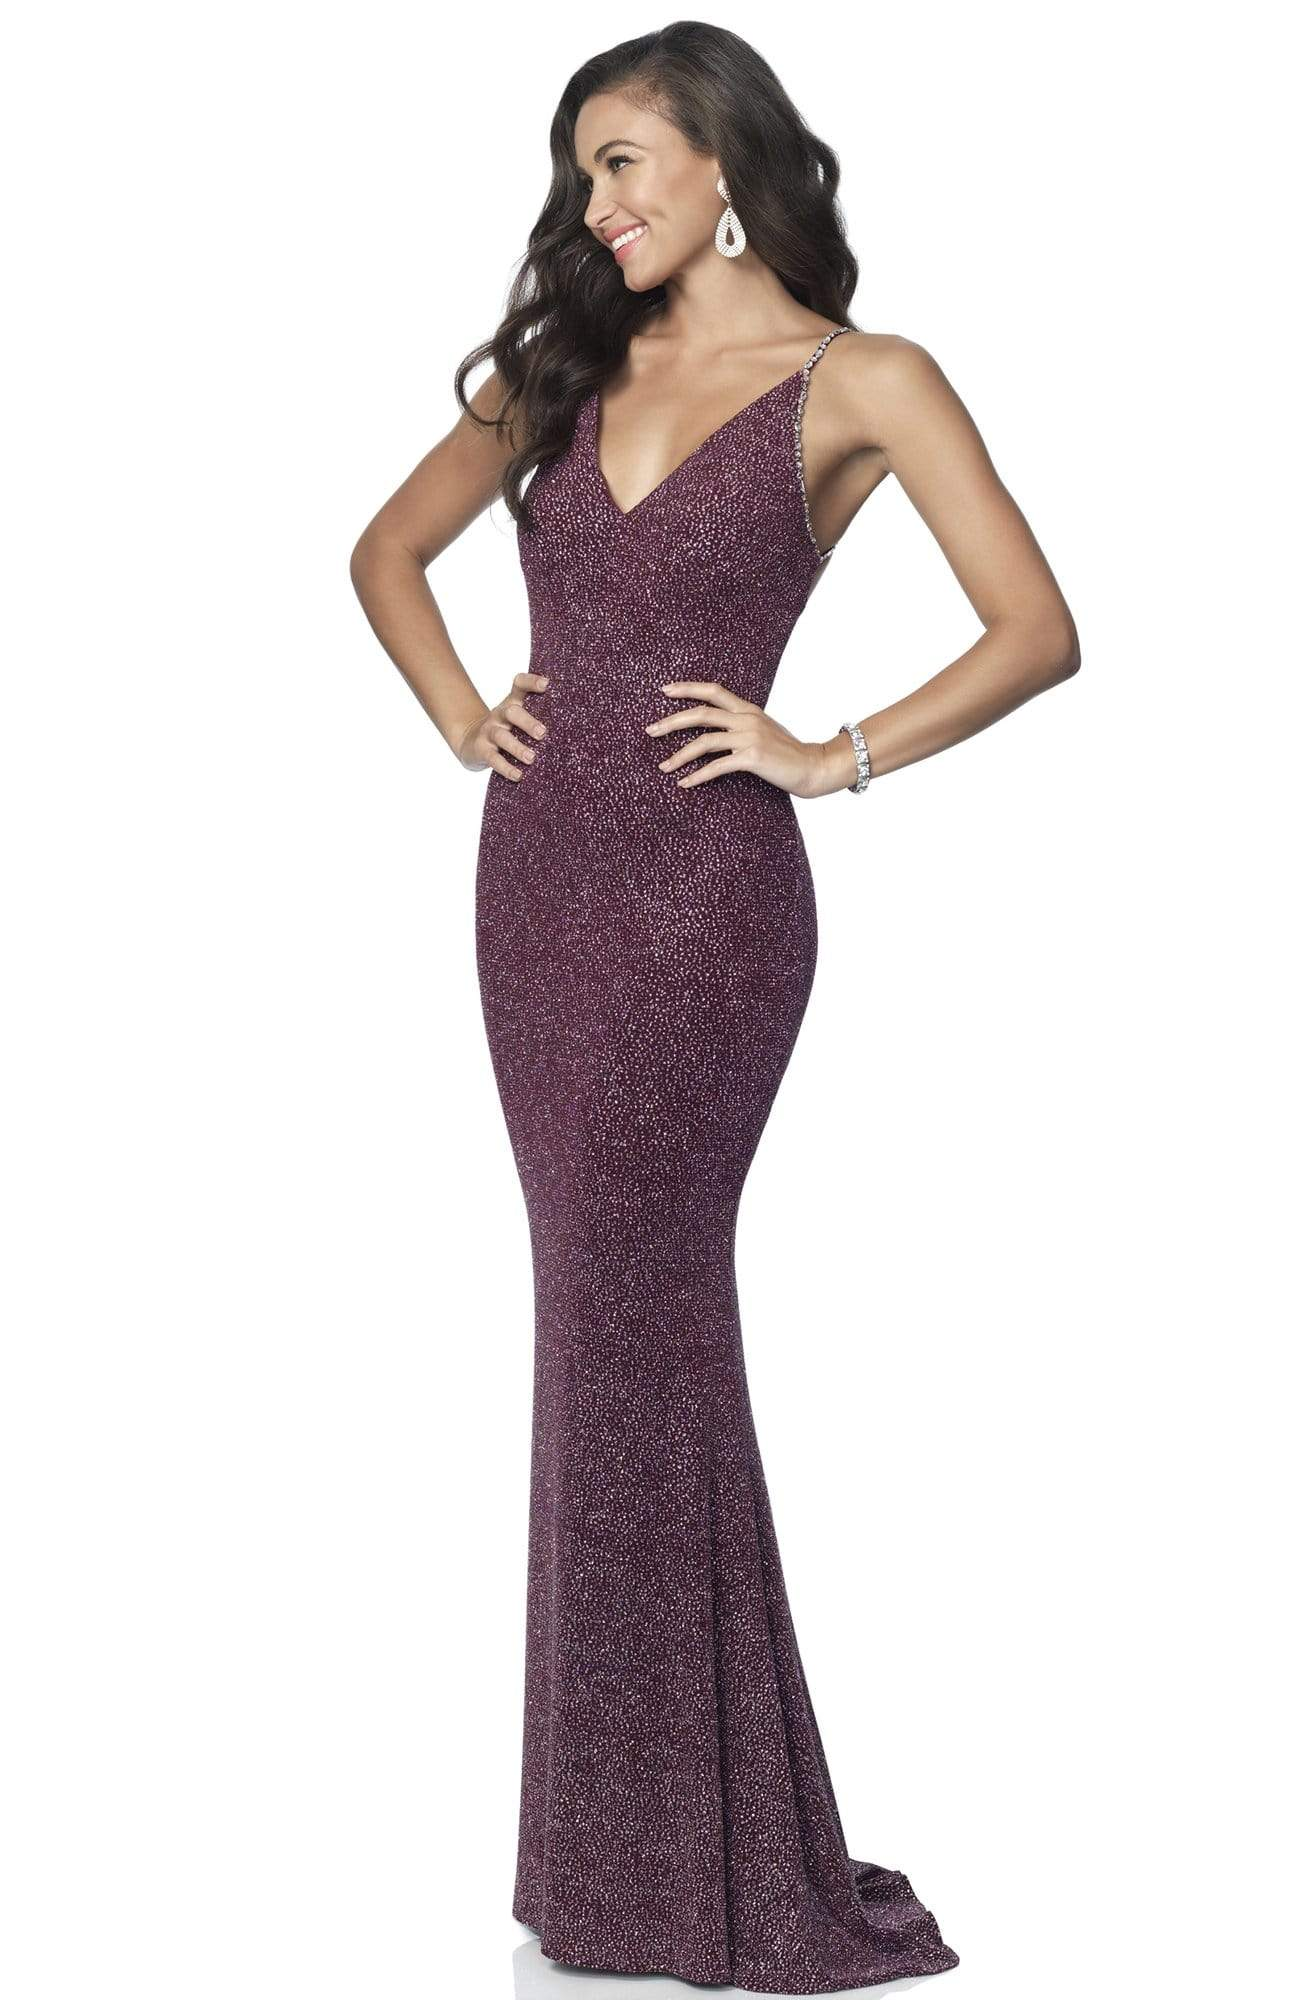 Blush by Alexia Designs - 11889 Sleeveless V Neck Glitter Knit Gown Evening Dresses 0 / Wine